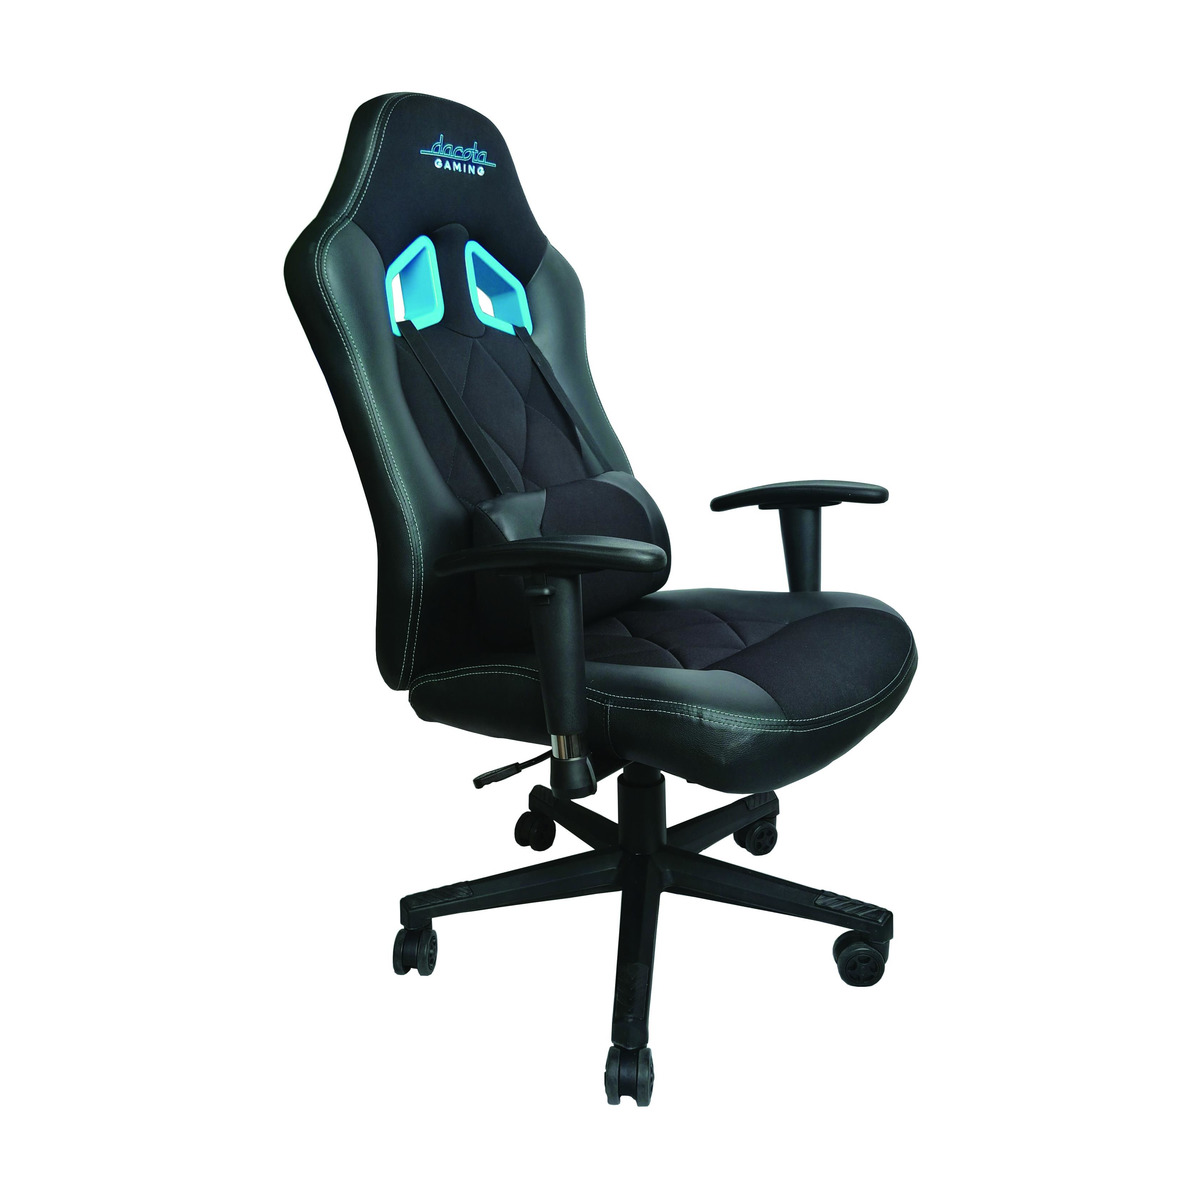 DACOTA GAMING CHAIR 100